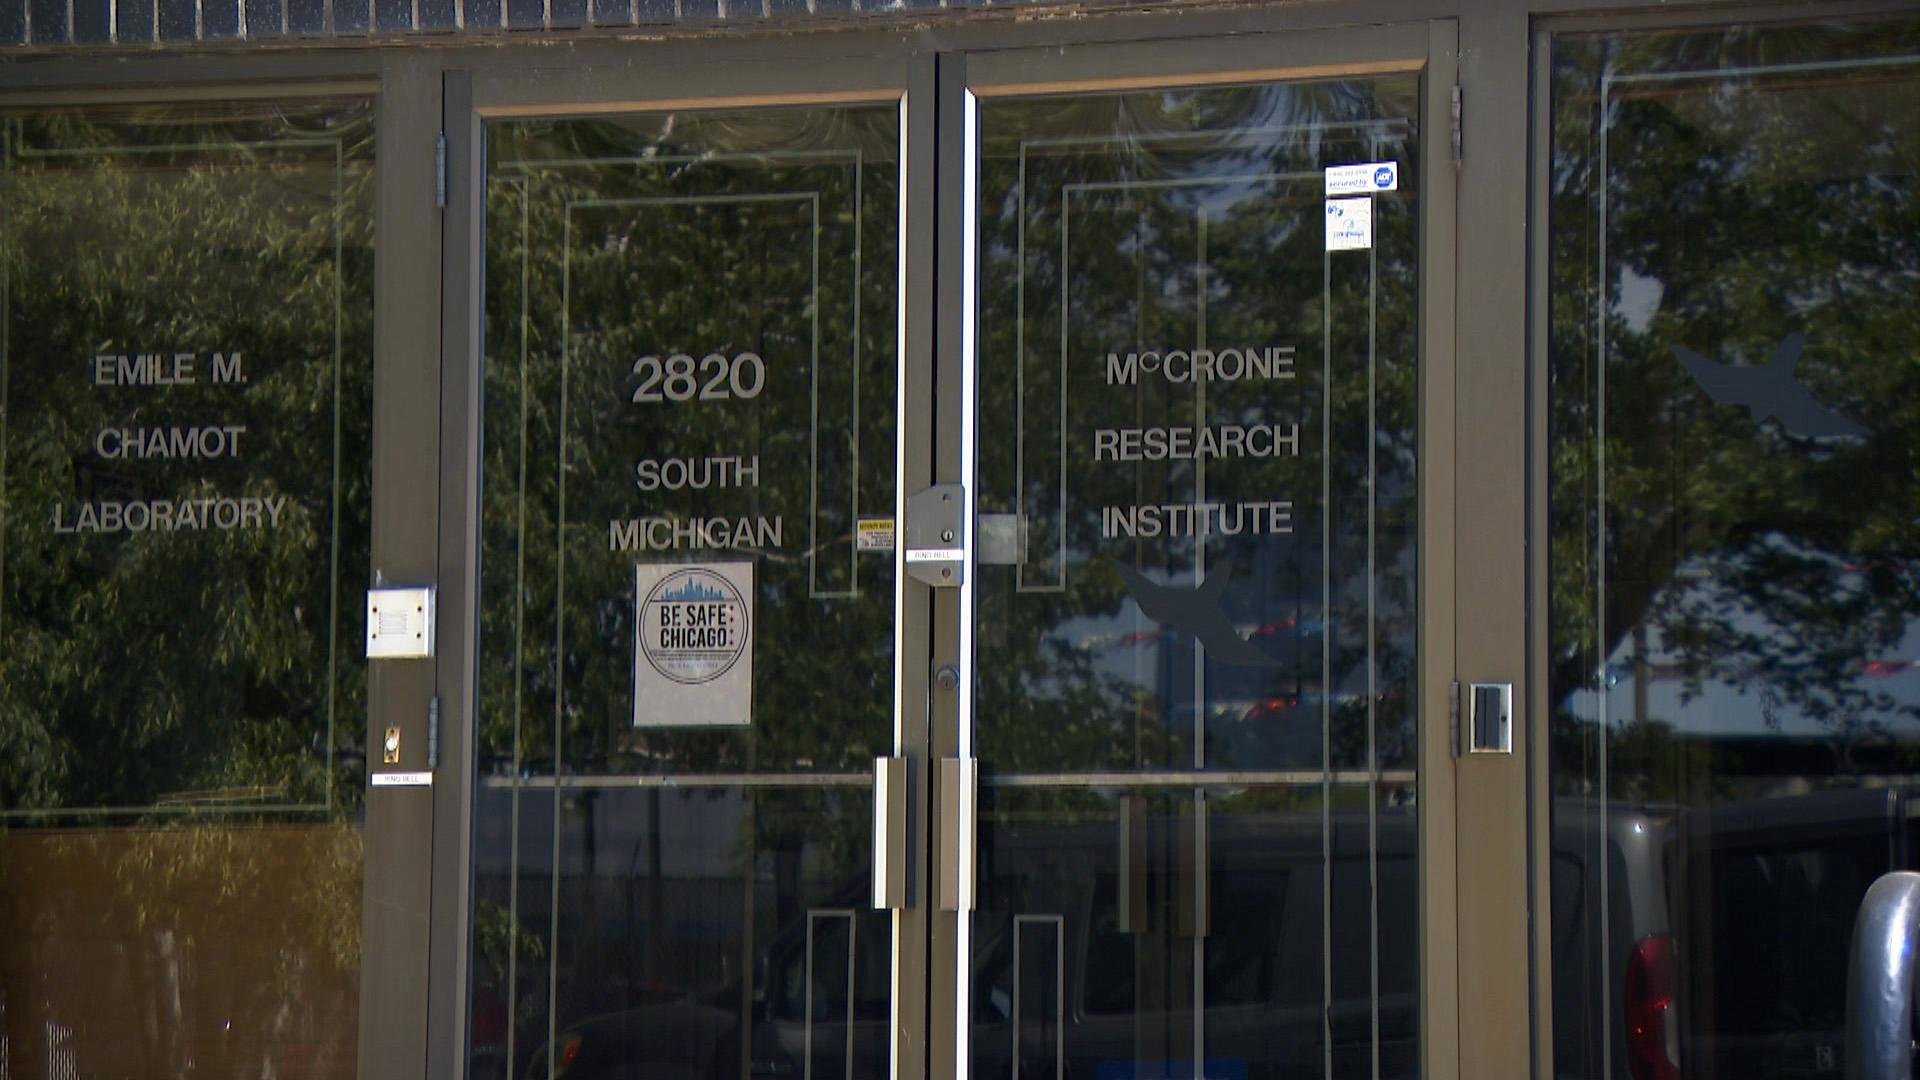 TheMcCrone Research Institute (WTTW News)